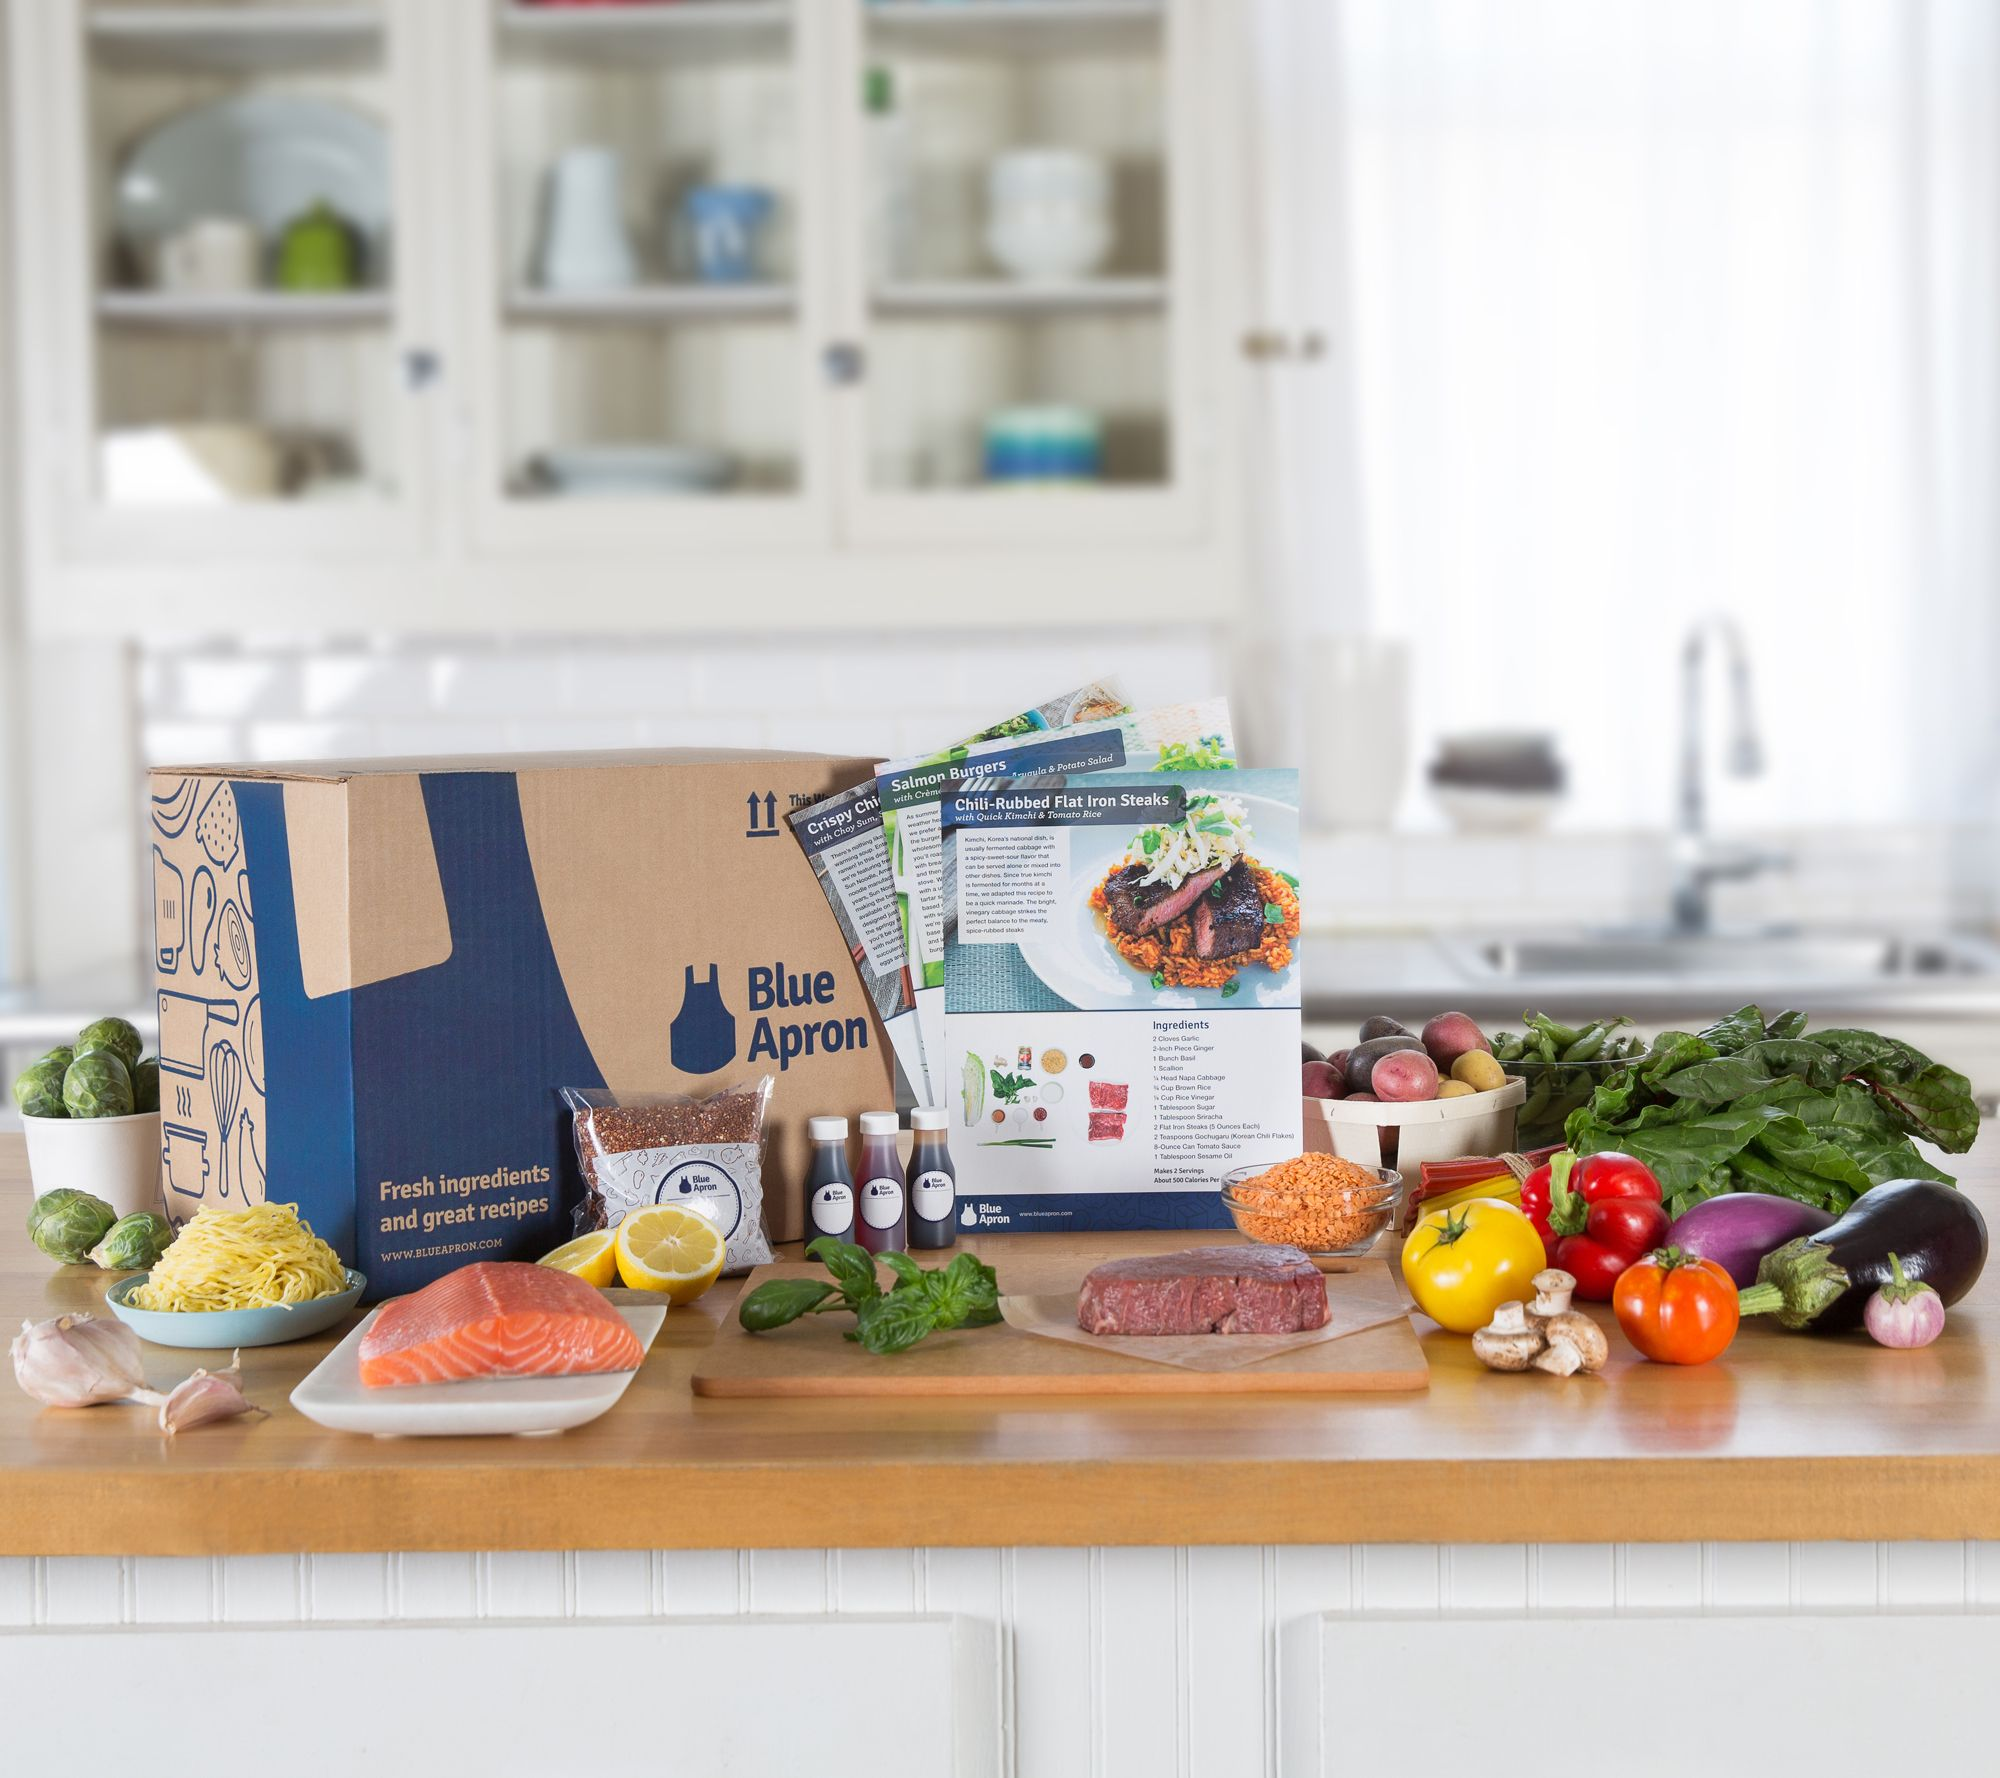 Blue apron nyc office address